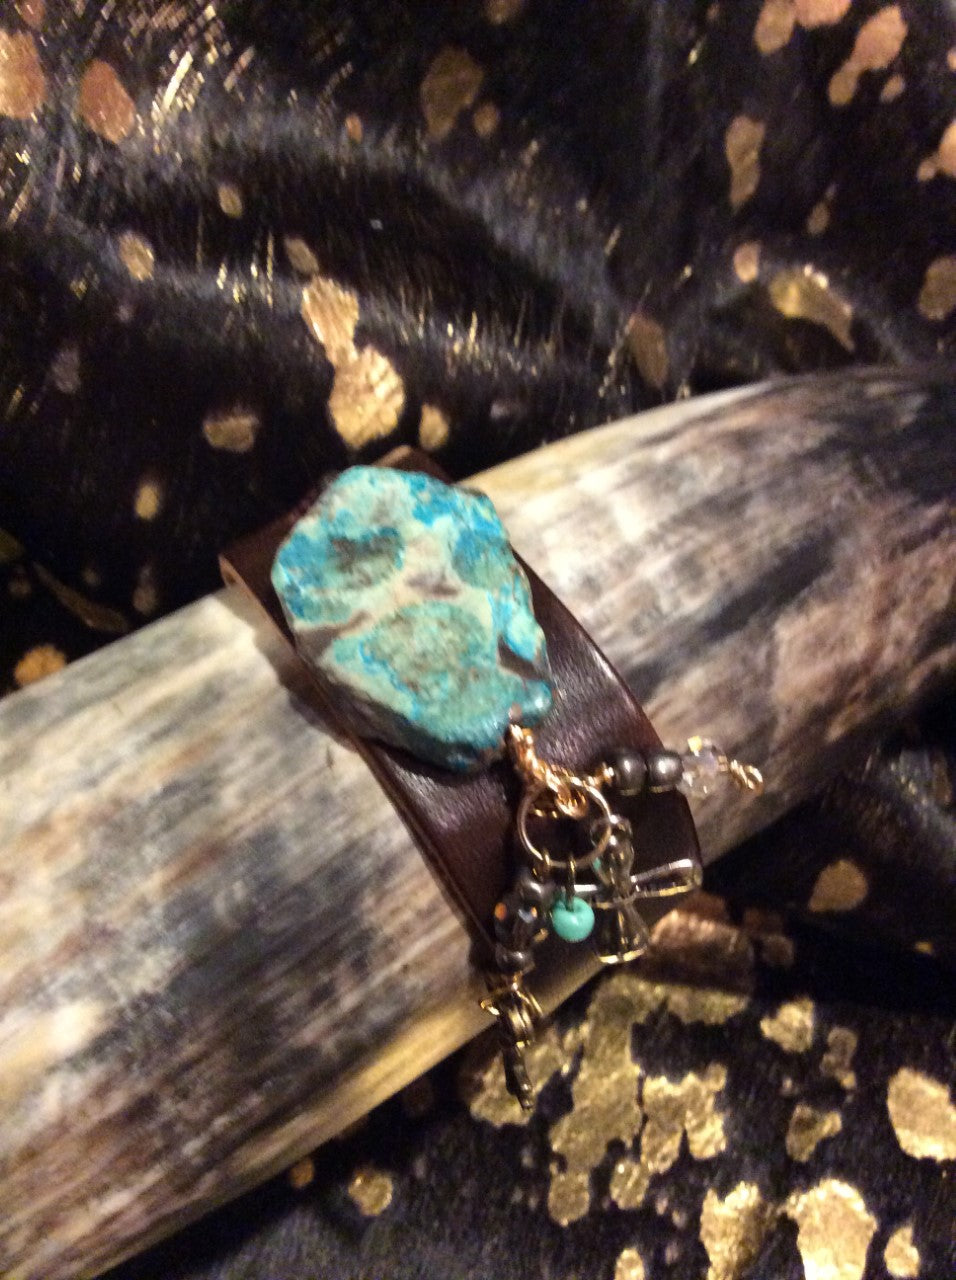 Vegetable tanned leather, Turquoise stone, charm bracelet, leather jewelry